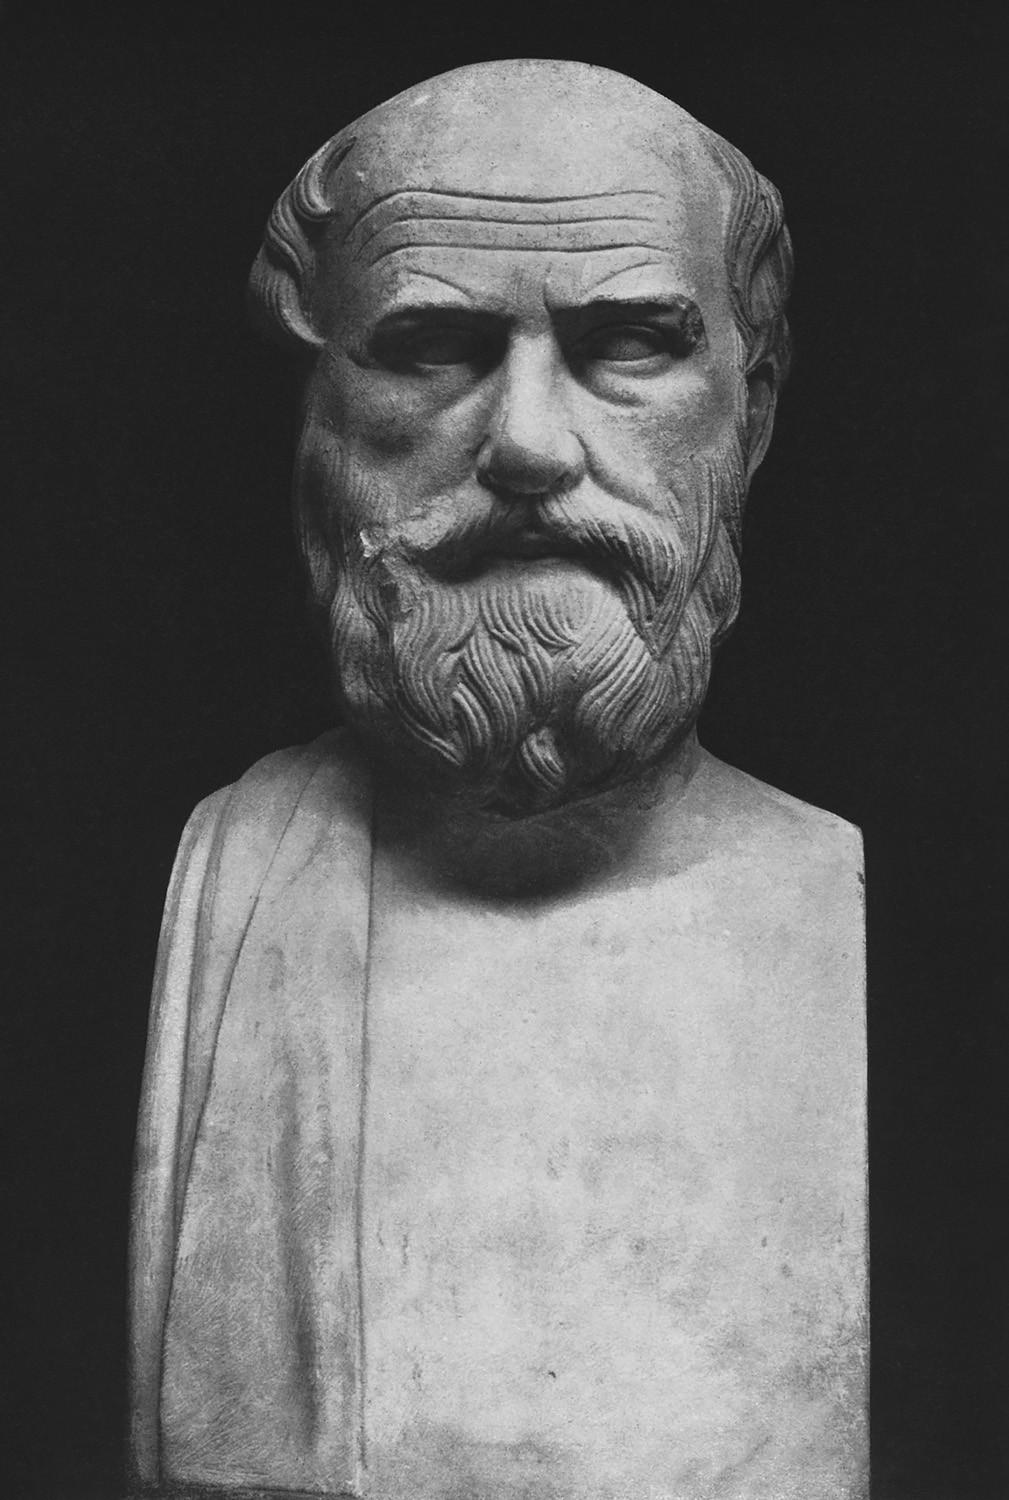 Lysias. Marble. No. 96. Rome, Capitoline Museums, Palazzo Nuovo, Hall of the Philosophers